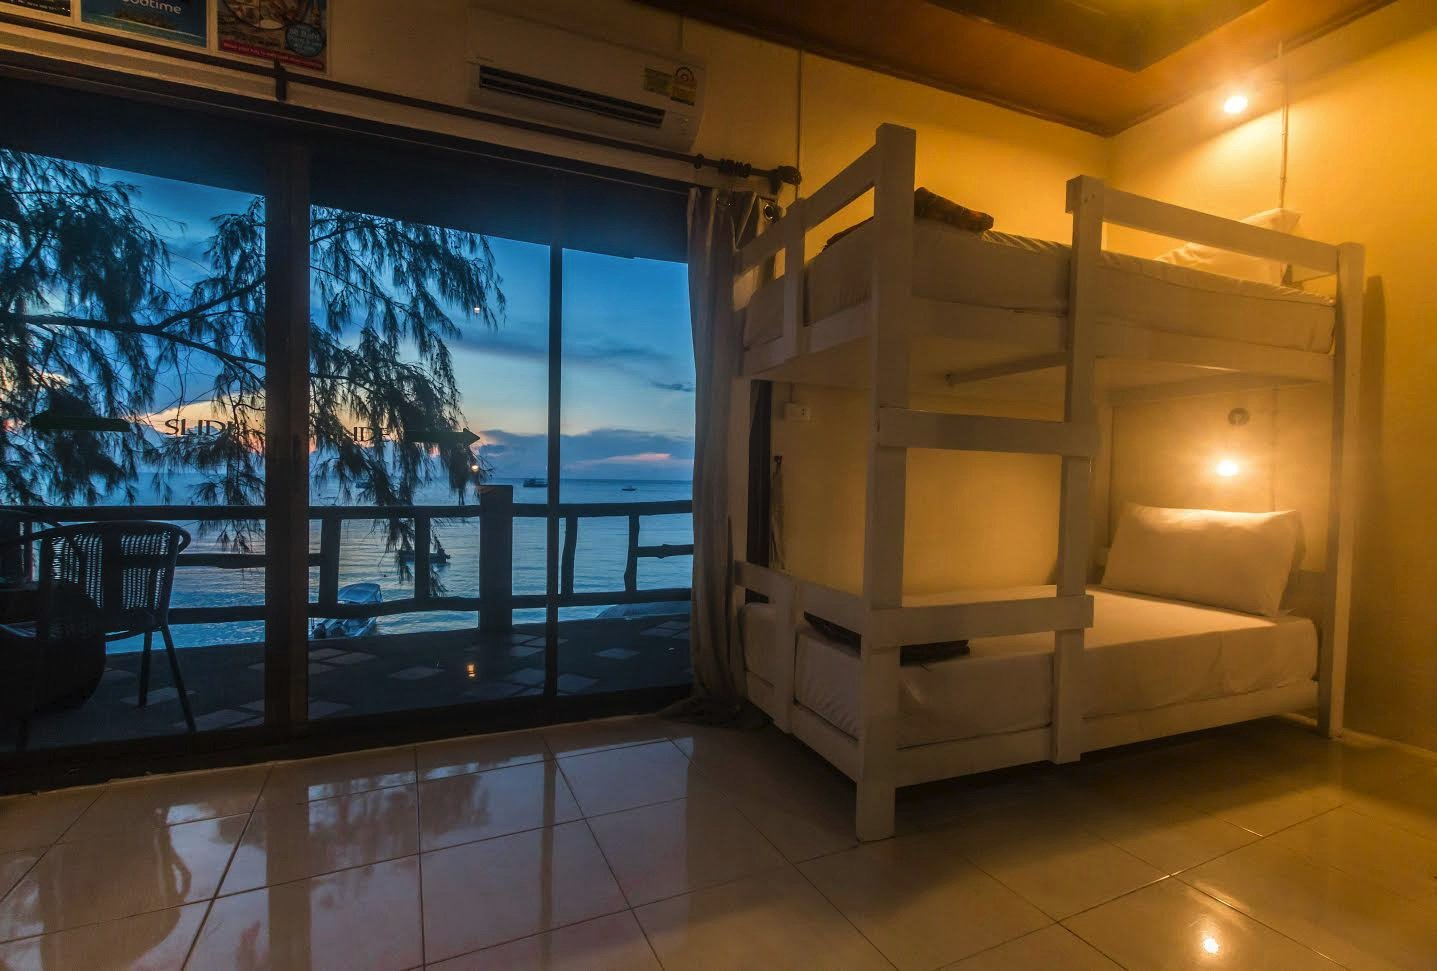 Goodtime Beach Hostel